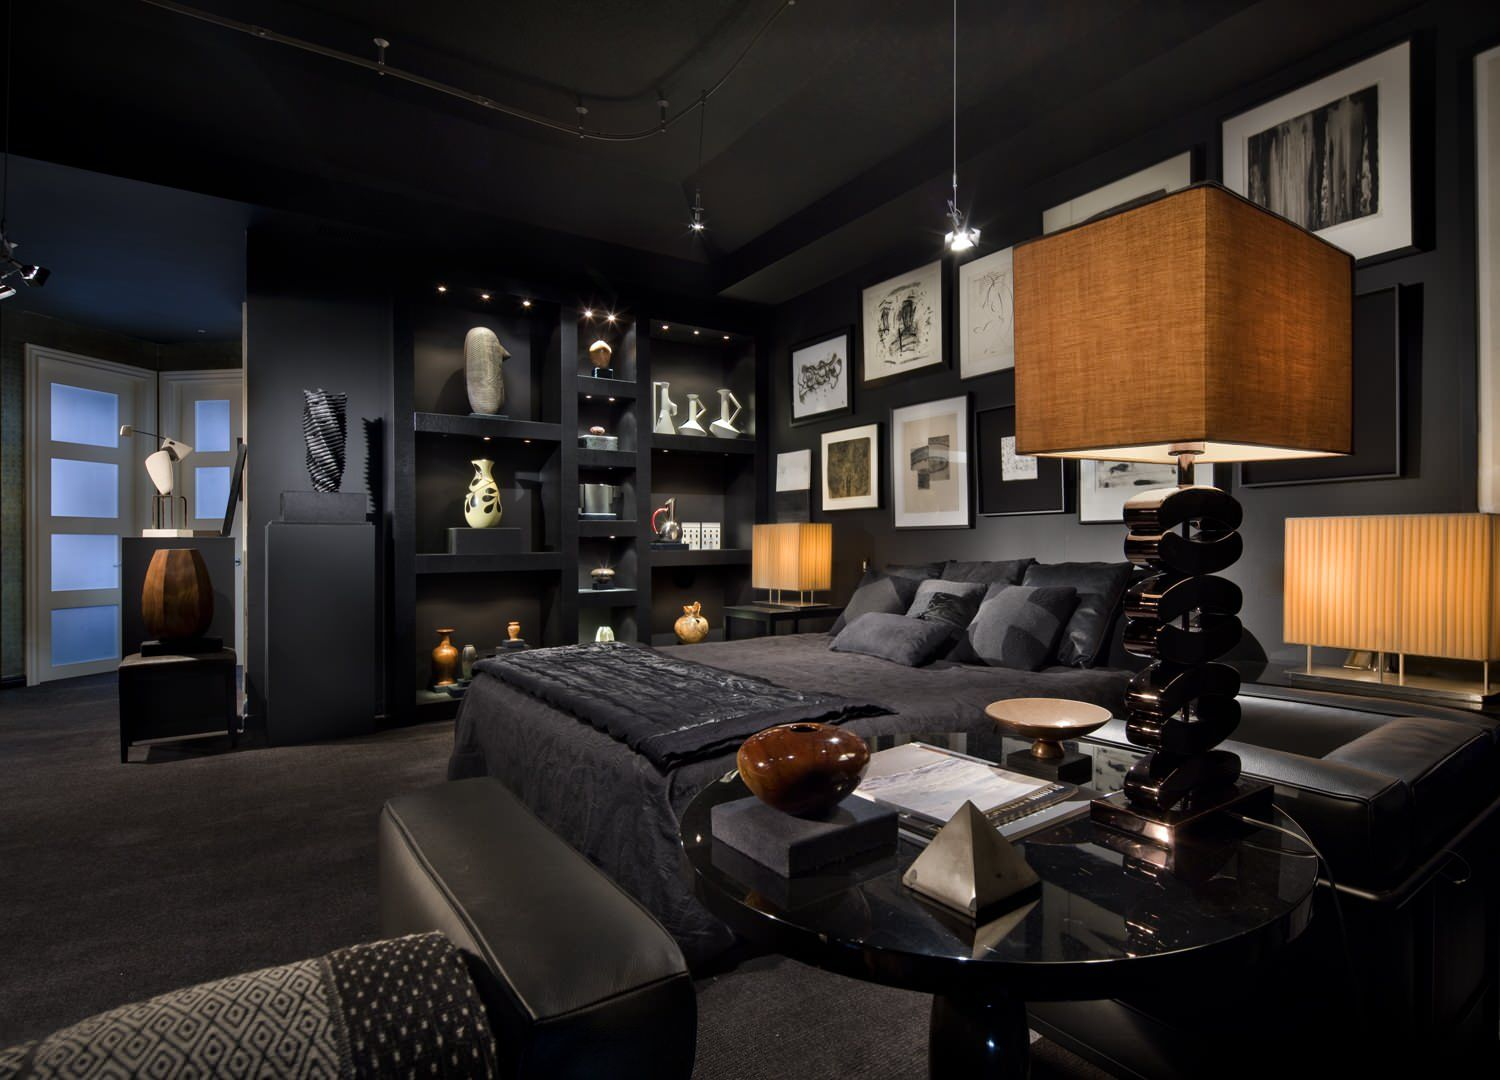 20 Amazing Bedroom for Men Related image